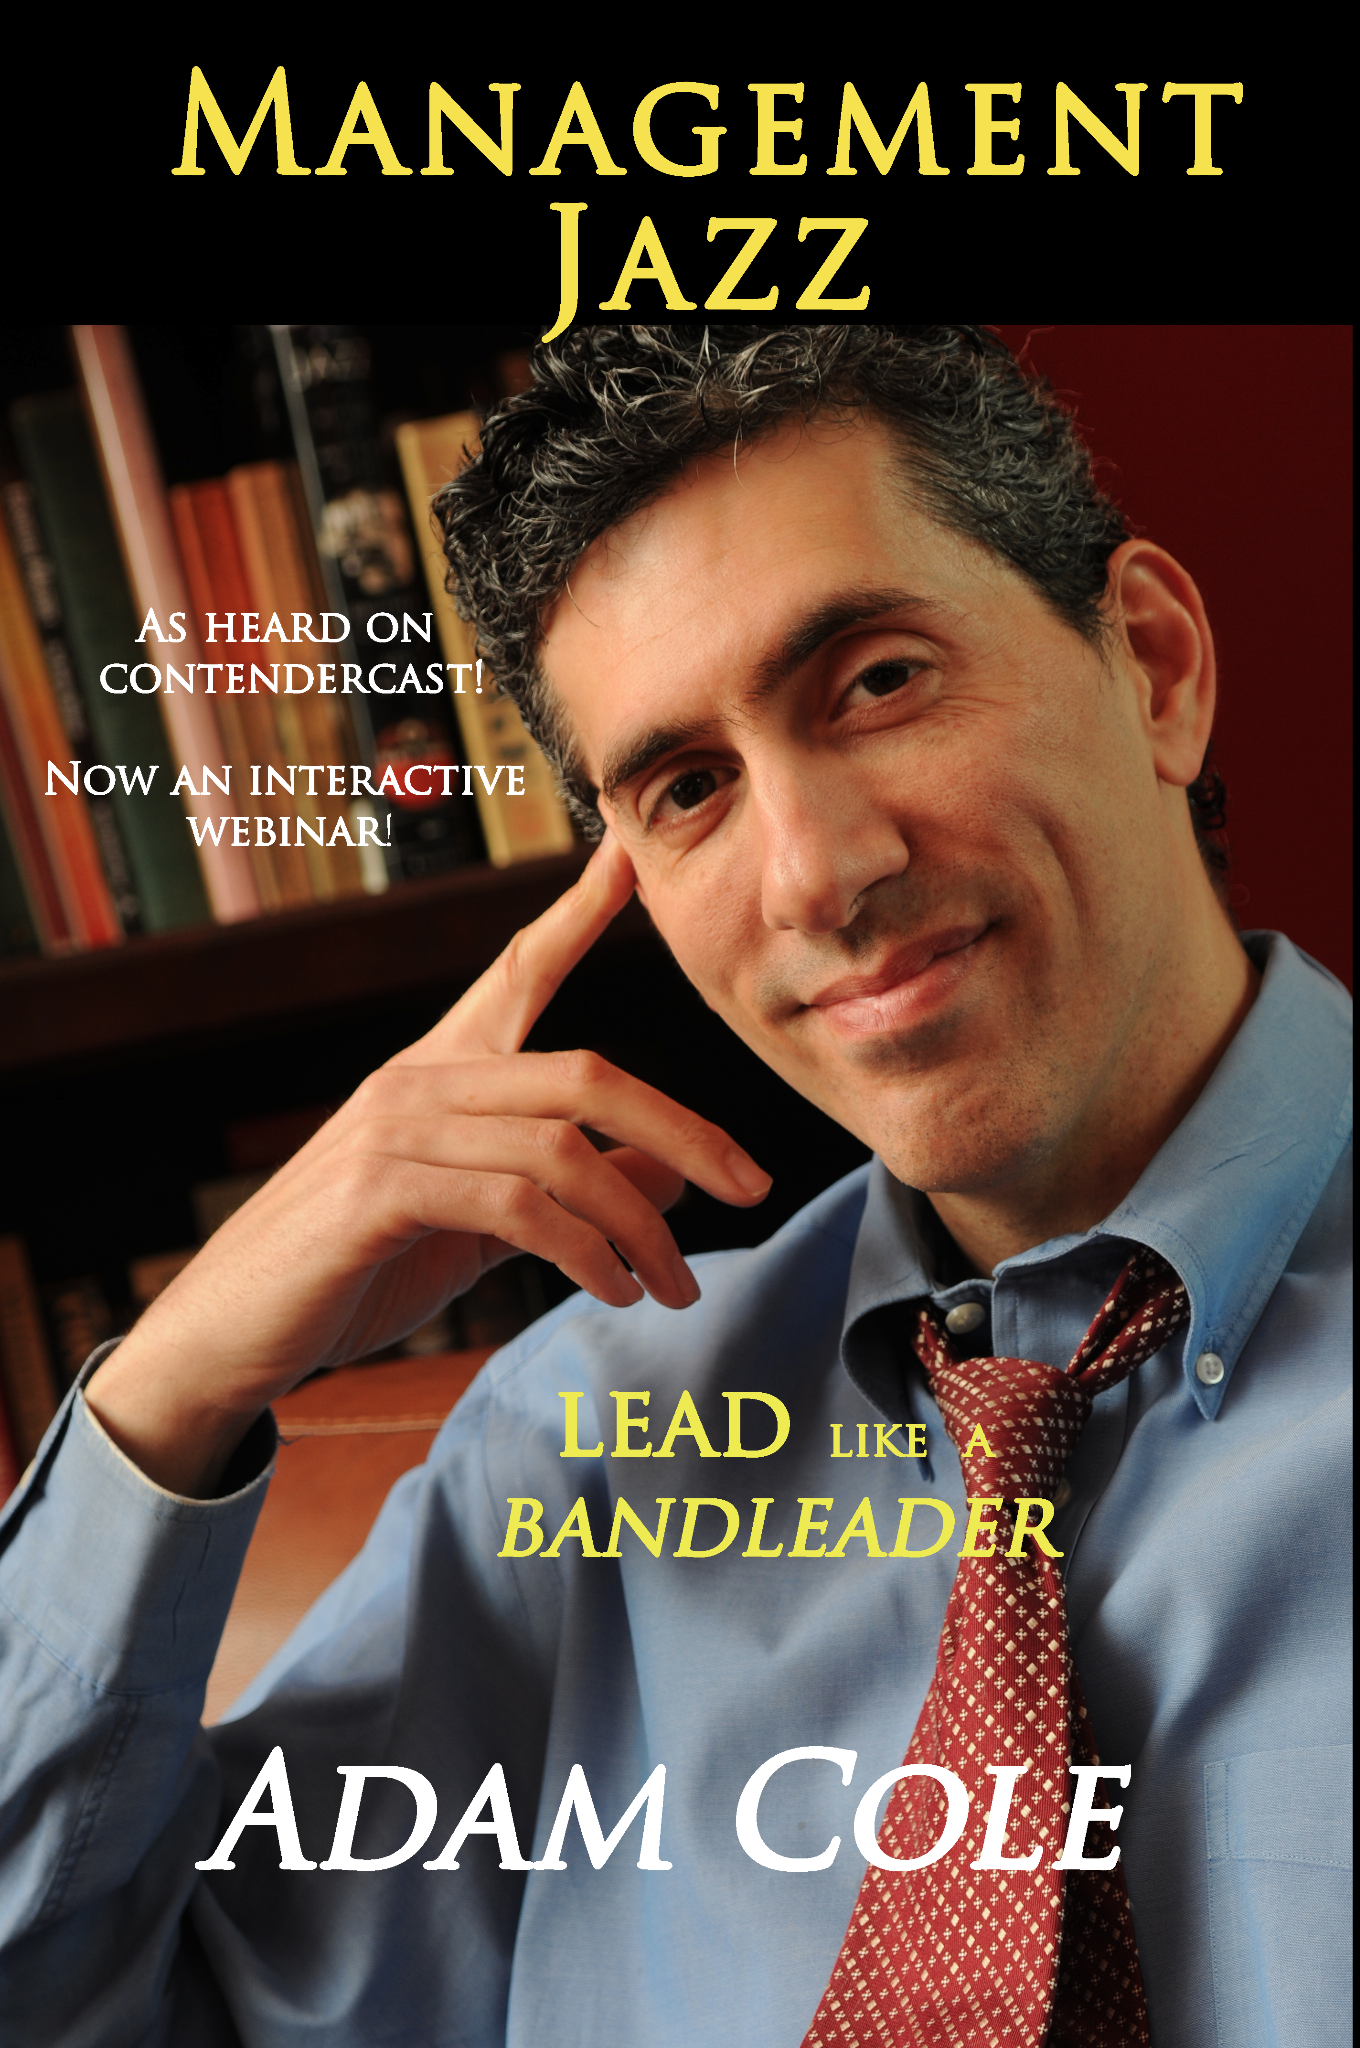 Management Jazz - Lead Like A Bandleader